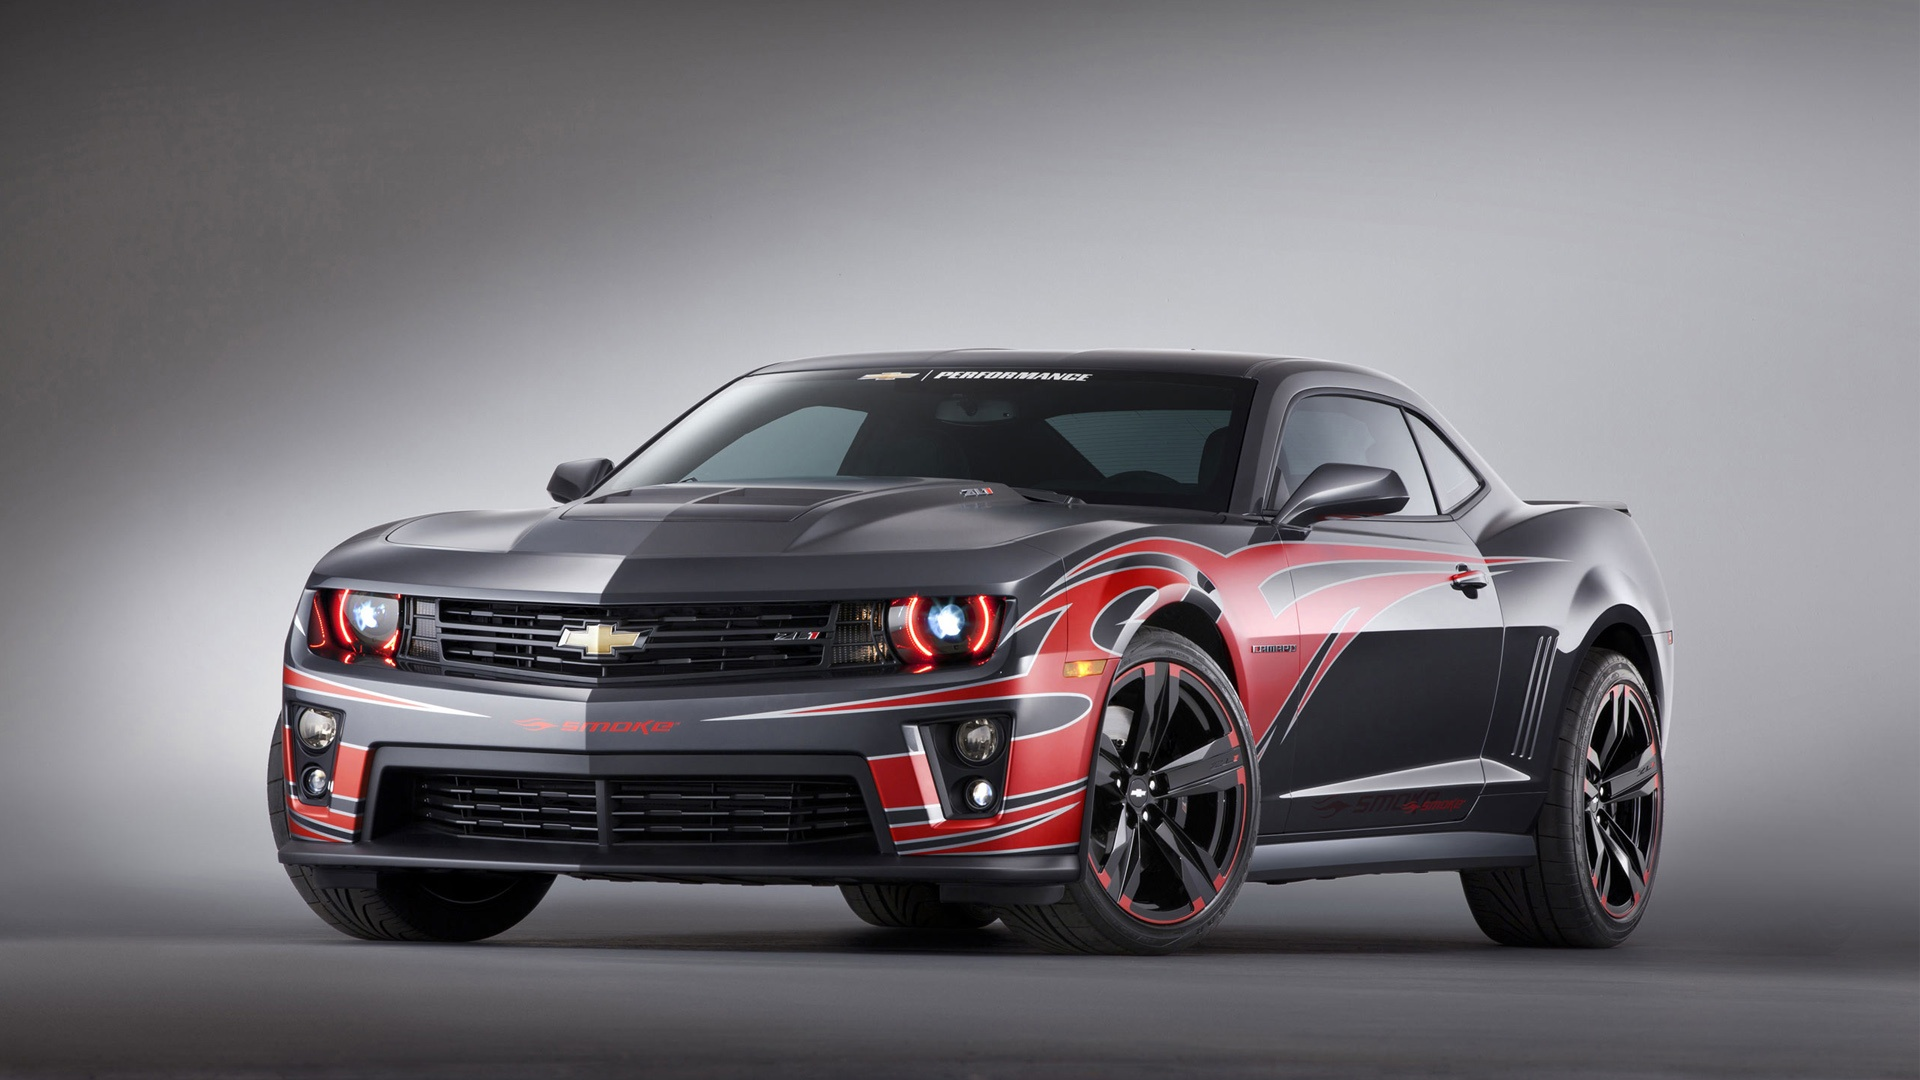 Chevrolet Camaro ZL1 Wallpaper Wallpupcom 1920x1080